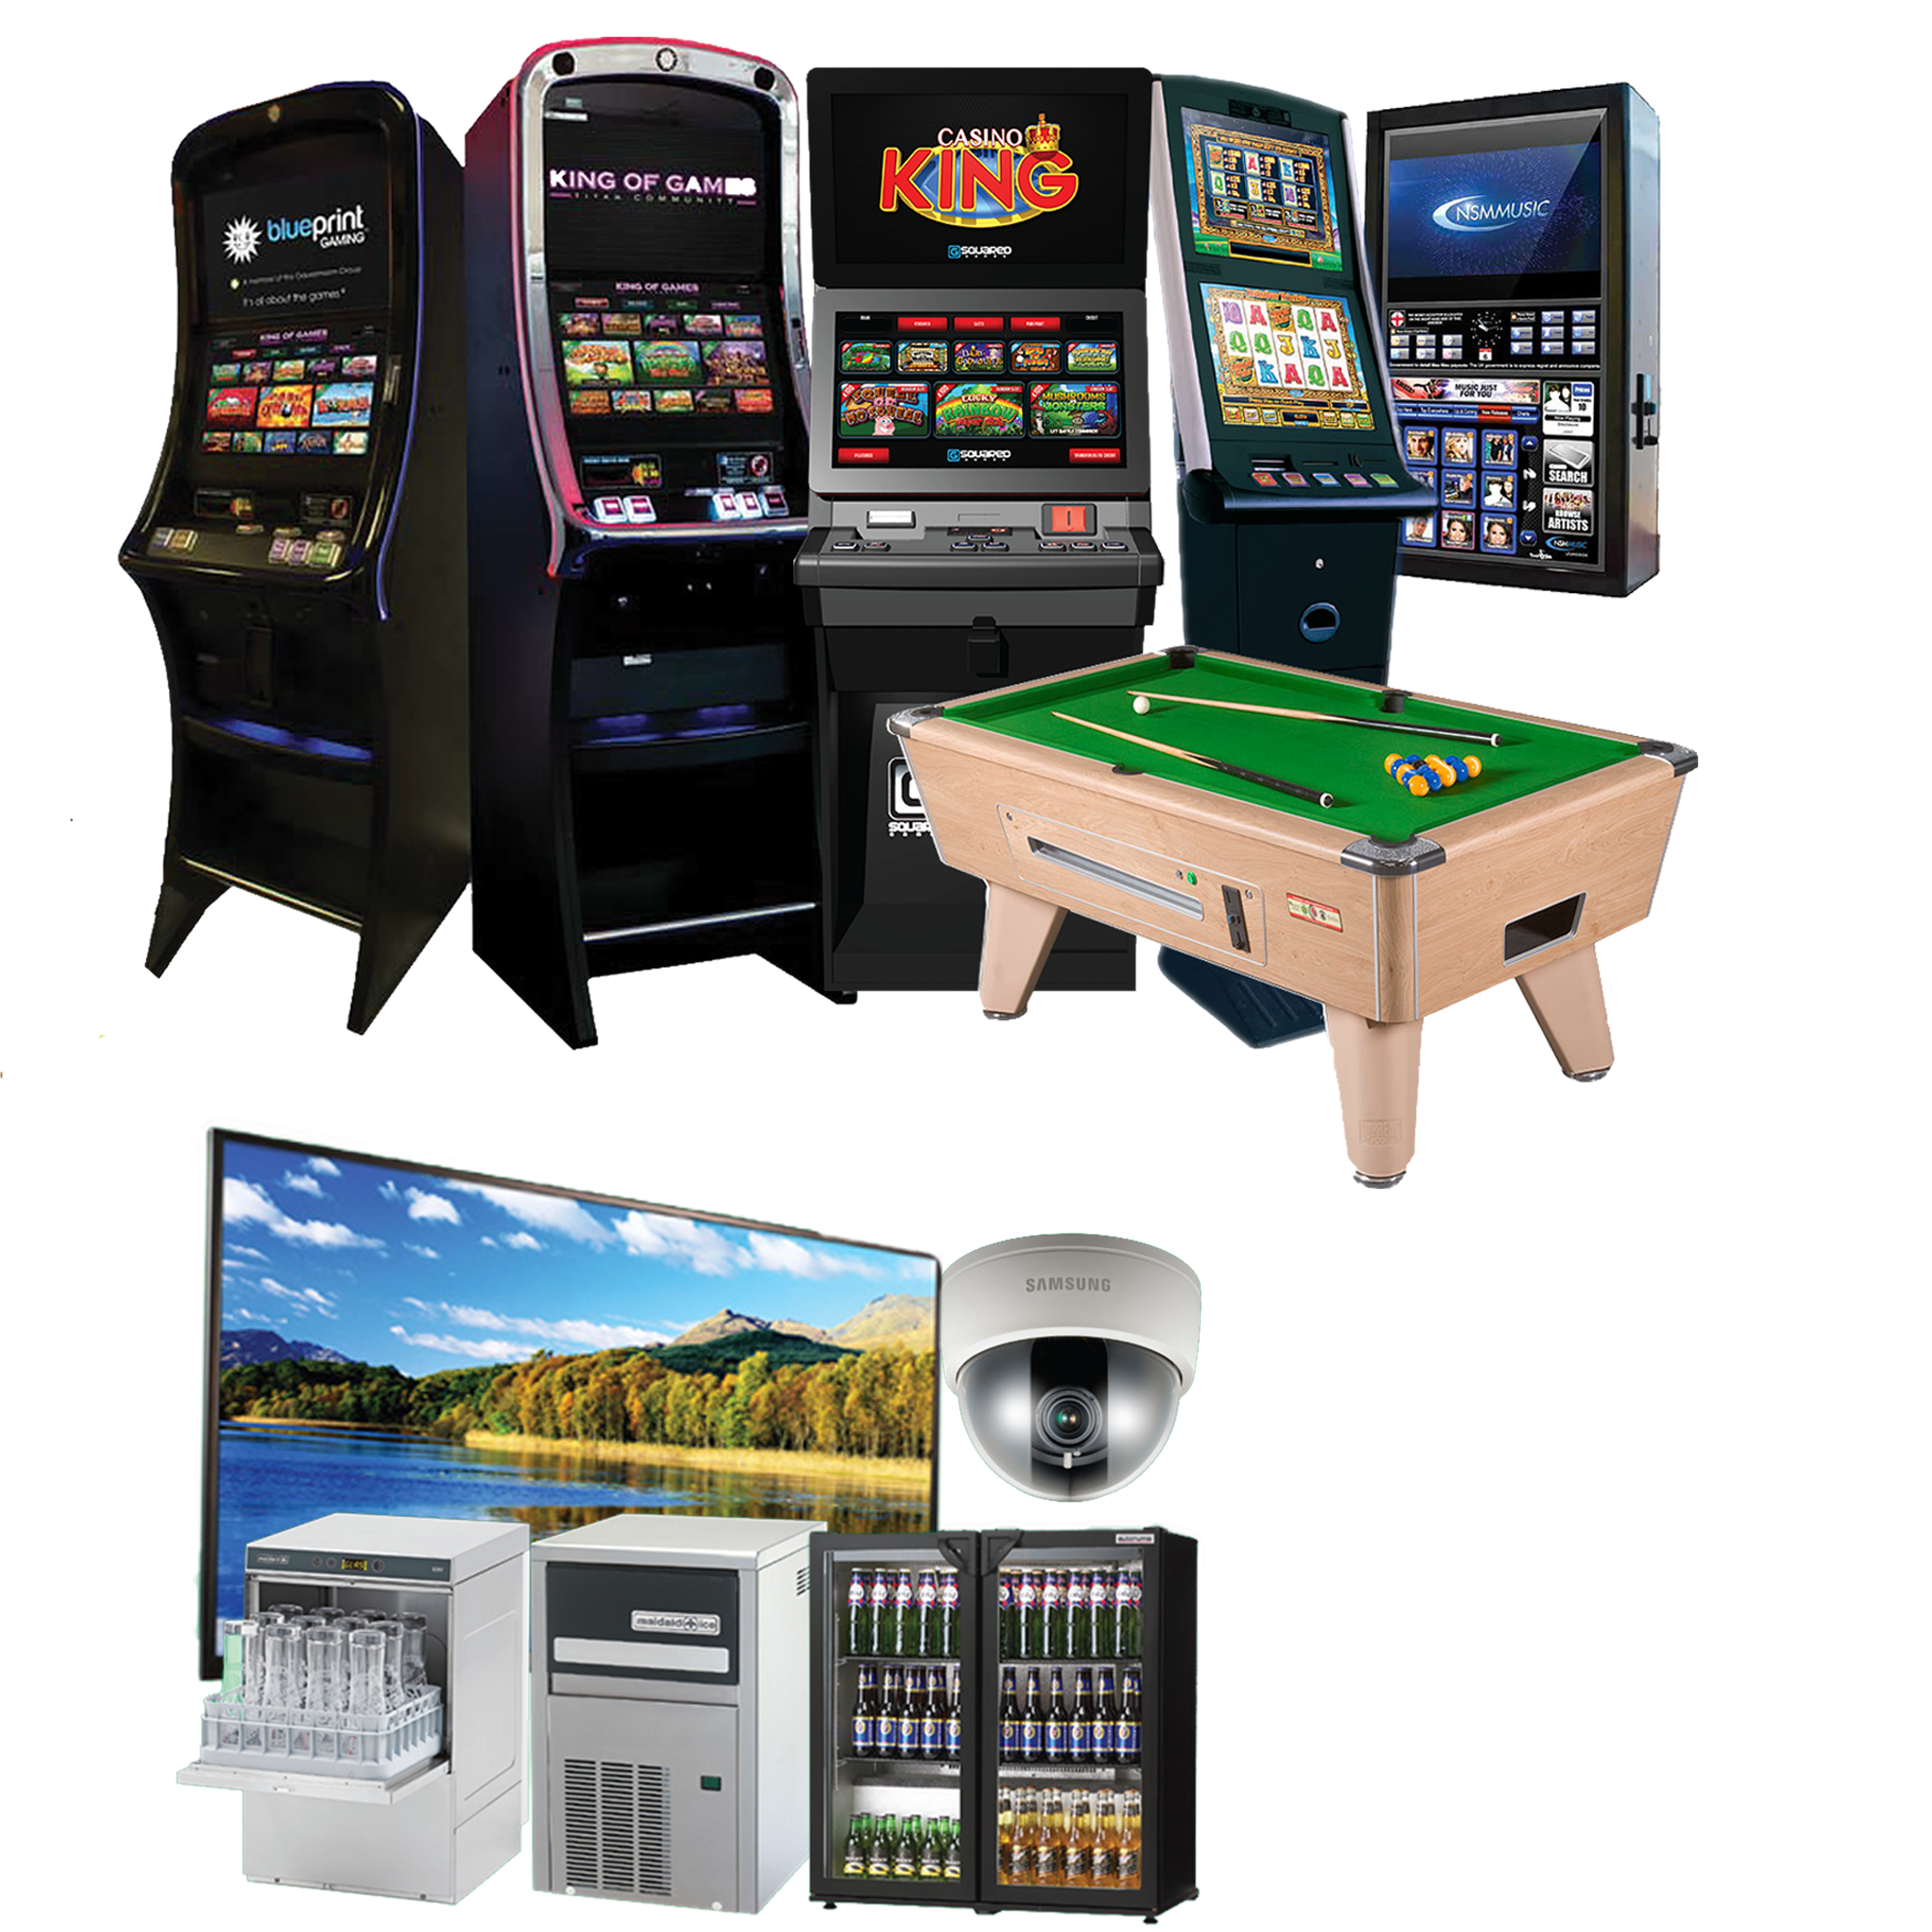 Category C and B4 digital fruit machines, pool table, jackpot lottery and juke box. Backbar equipment, glass washer, drinks cooler, ice machine, CCTV, large screen TV